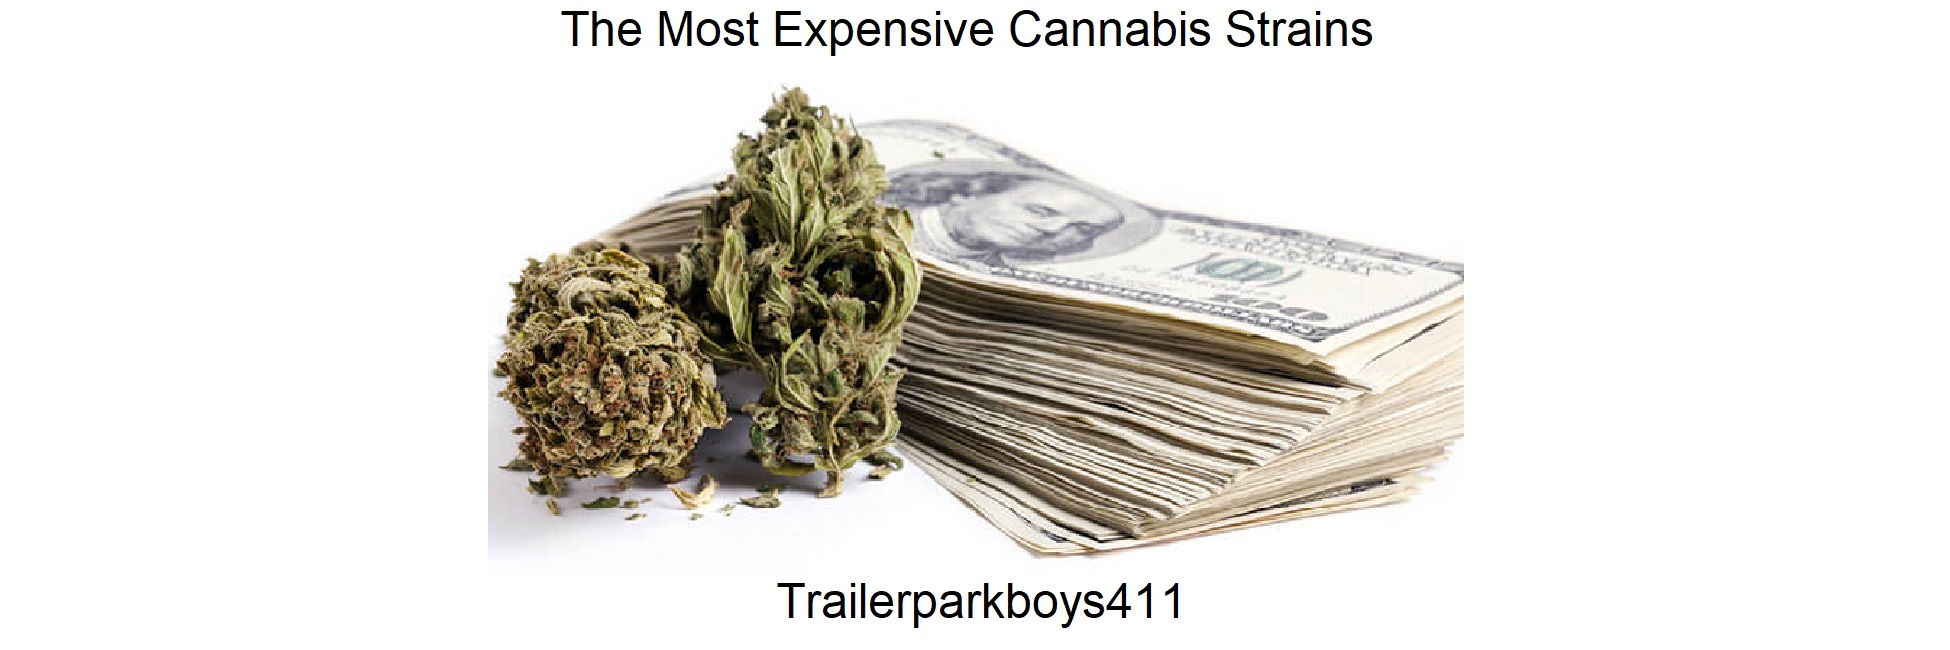 The Most Expensive Cannabis Strains